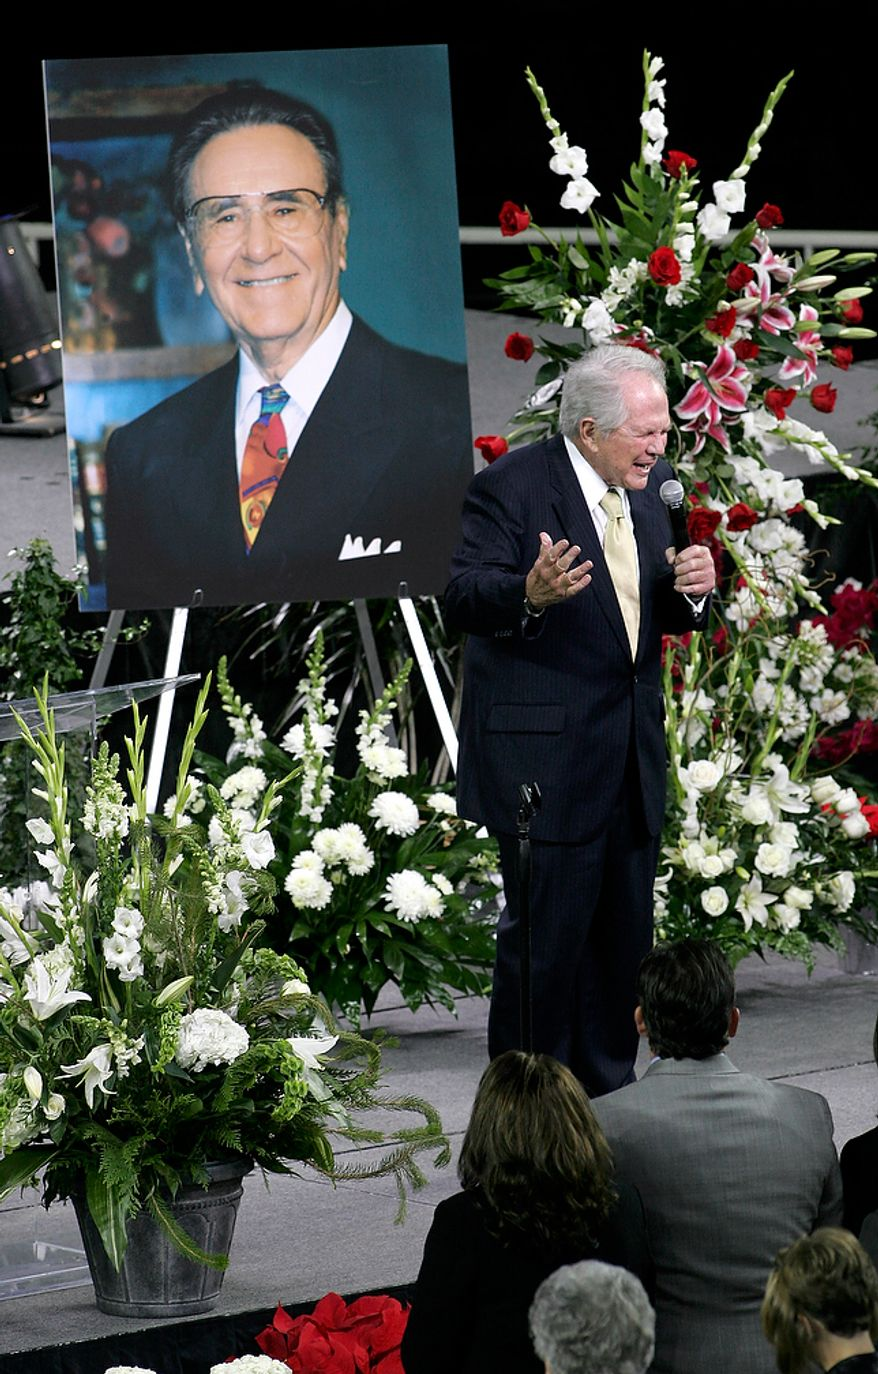 Evangelist Pat Robertson gives the opening prayer at a memorial service for evangelist Oral Roberts on the campus of Oral Roberts University on Monday, Dec. 21, 2009.  Roberts died Dec. 15 at the age of 91. (AP Photo/David Crenshaw)